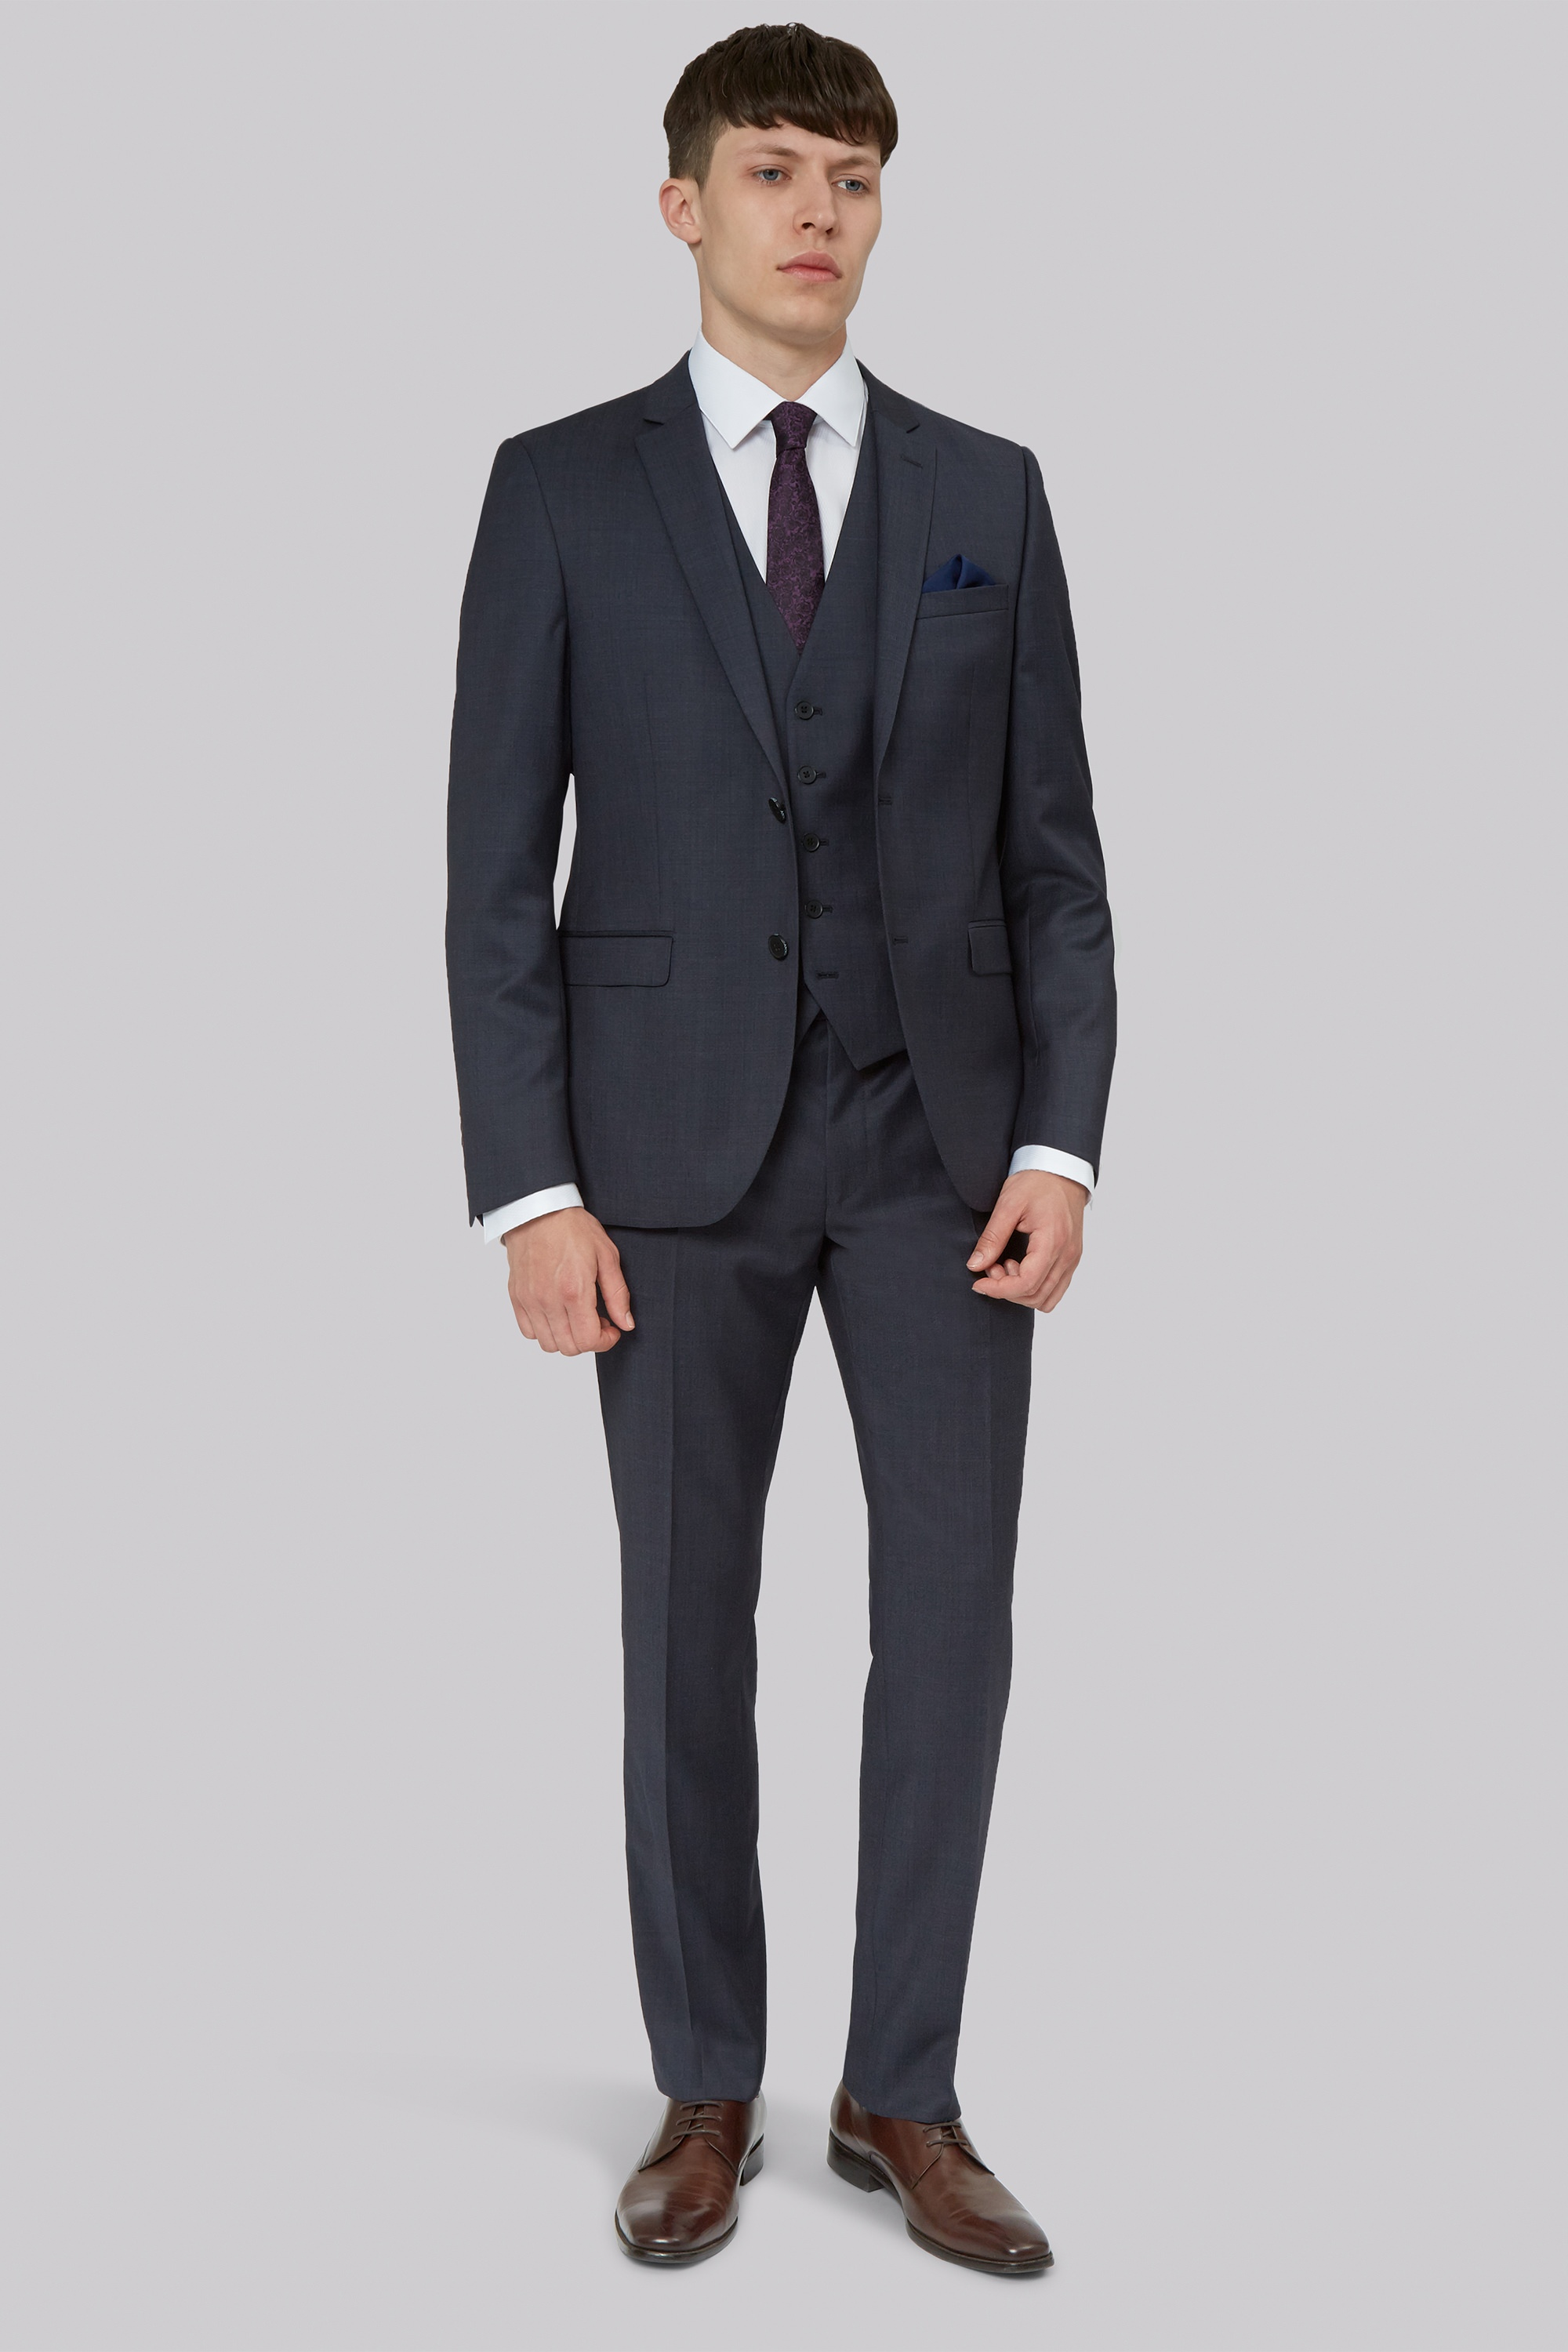 Browse Men's Slim Fit Sale Suits at Moss Bros